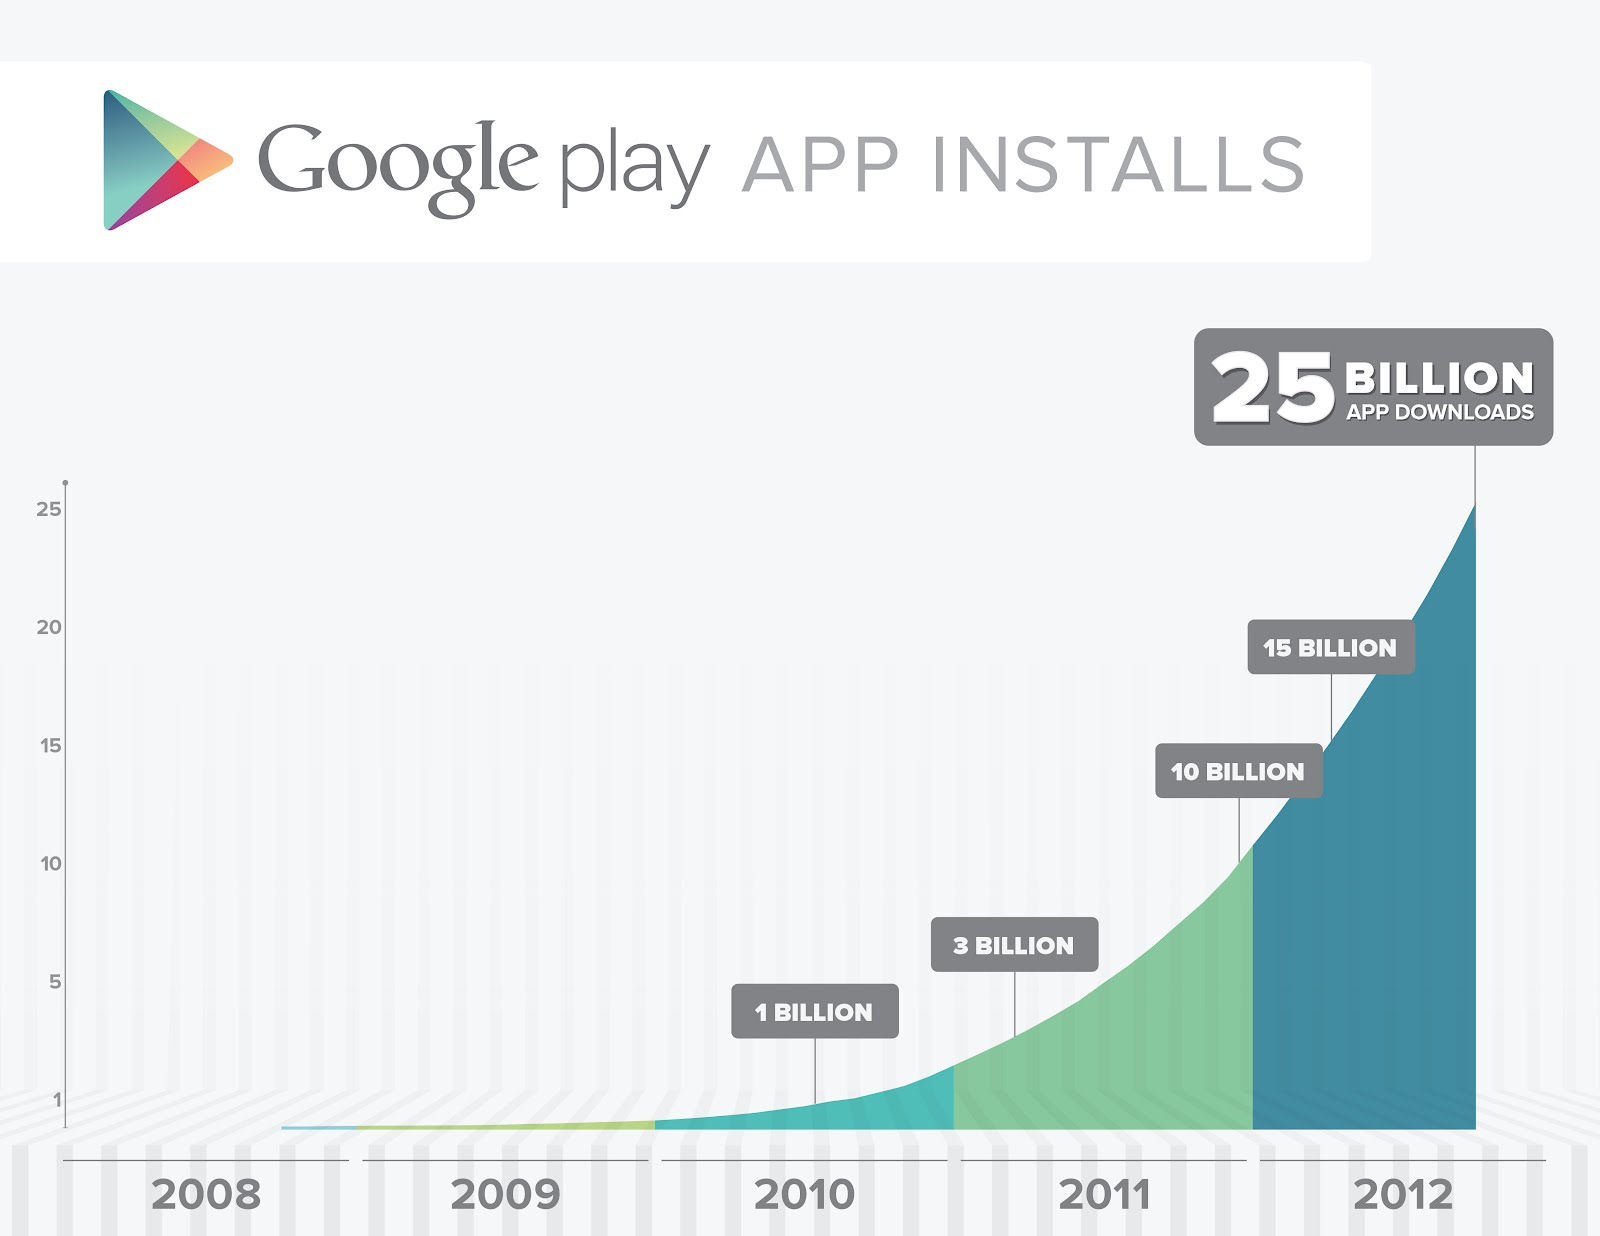 Google Play passes 25 billion downloads landmark, celebrates